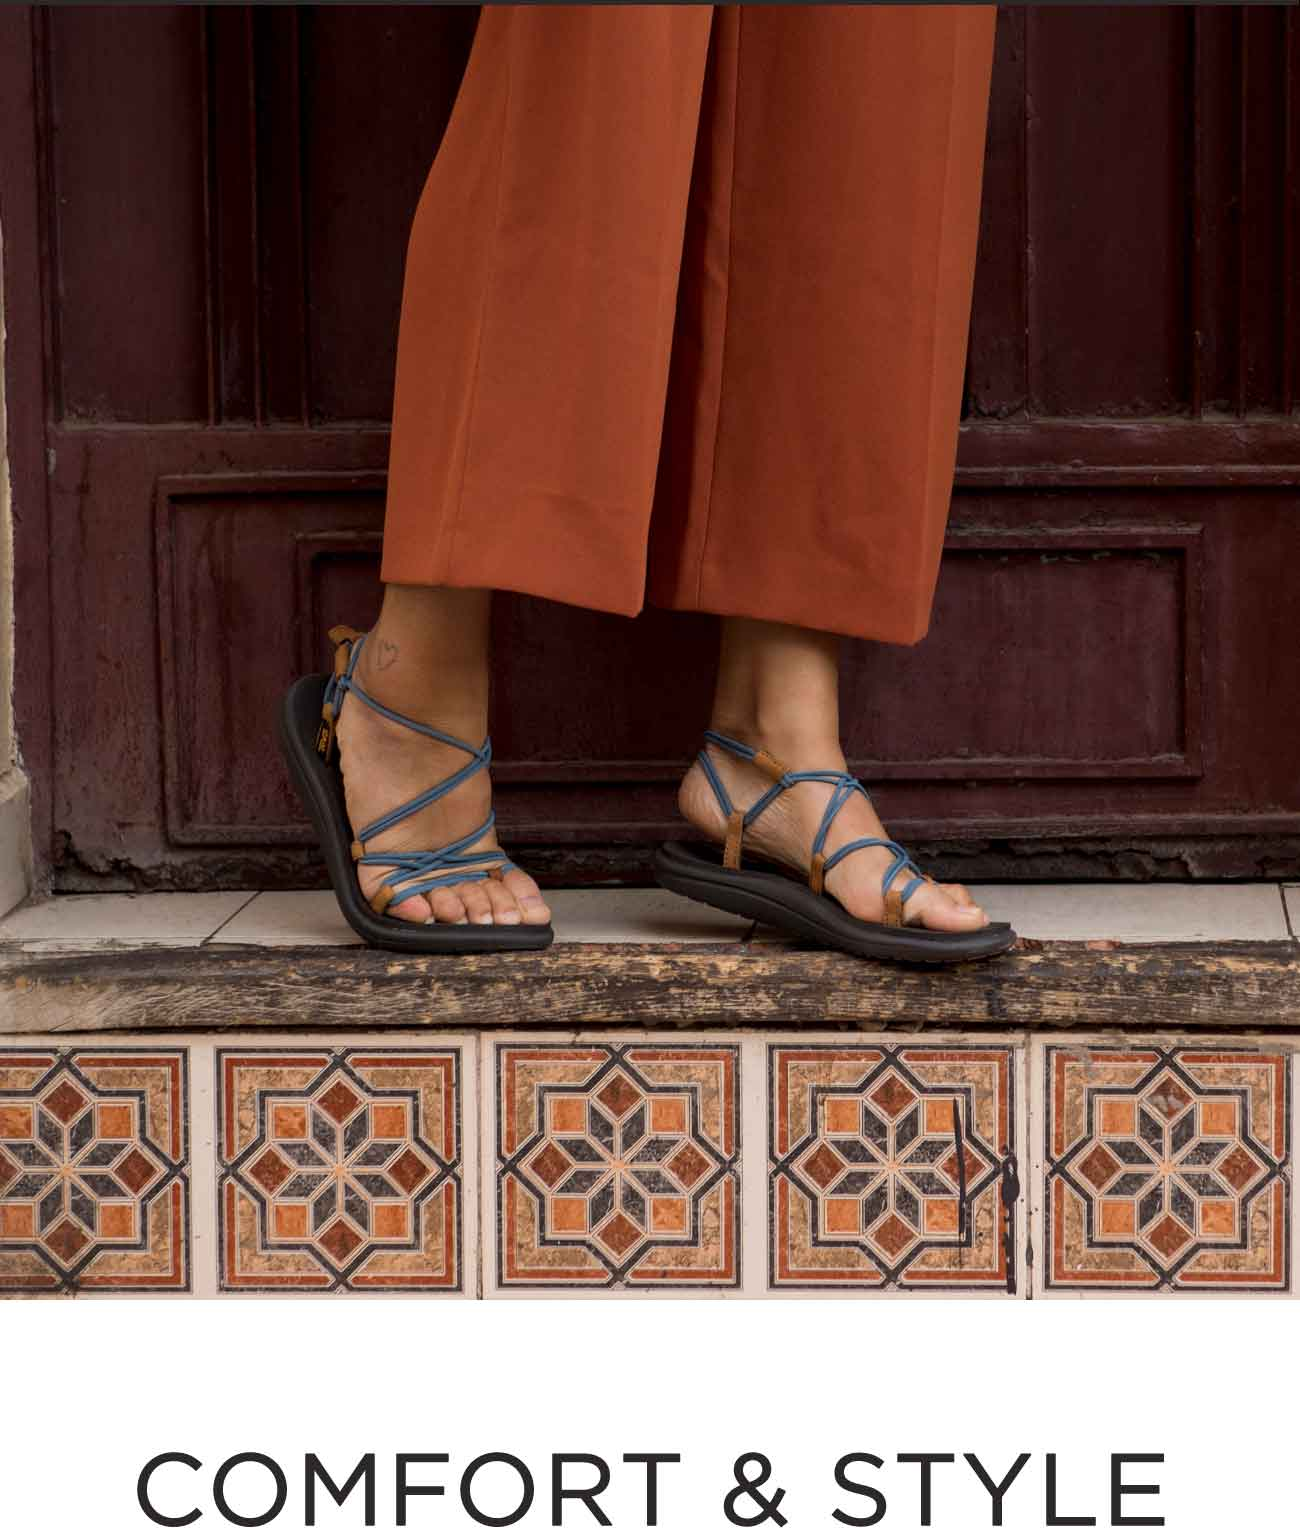 dc7289c88b94 The Voya Infinity combines the foot-forming comfort of our Mush footbed   a  feminine strappy upper